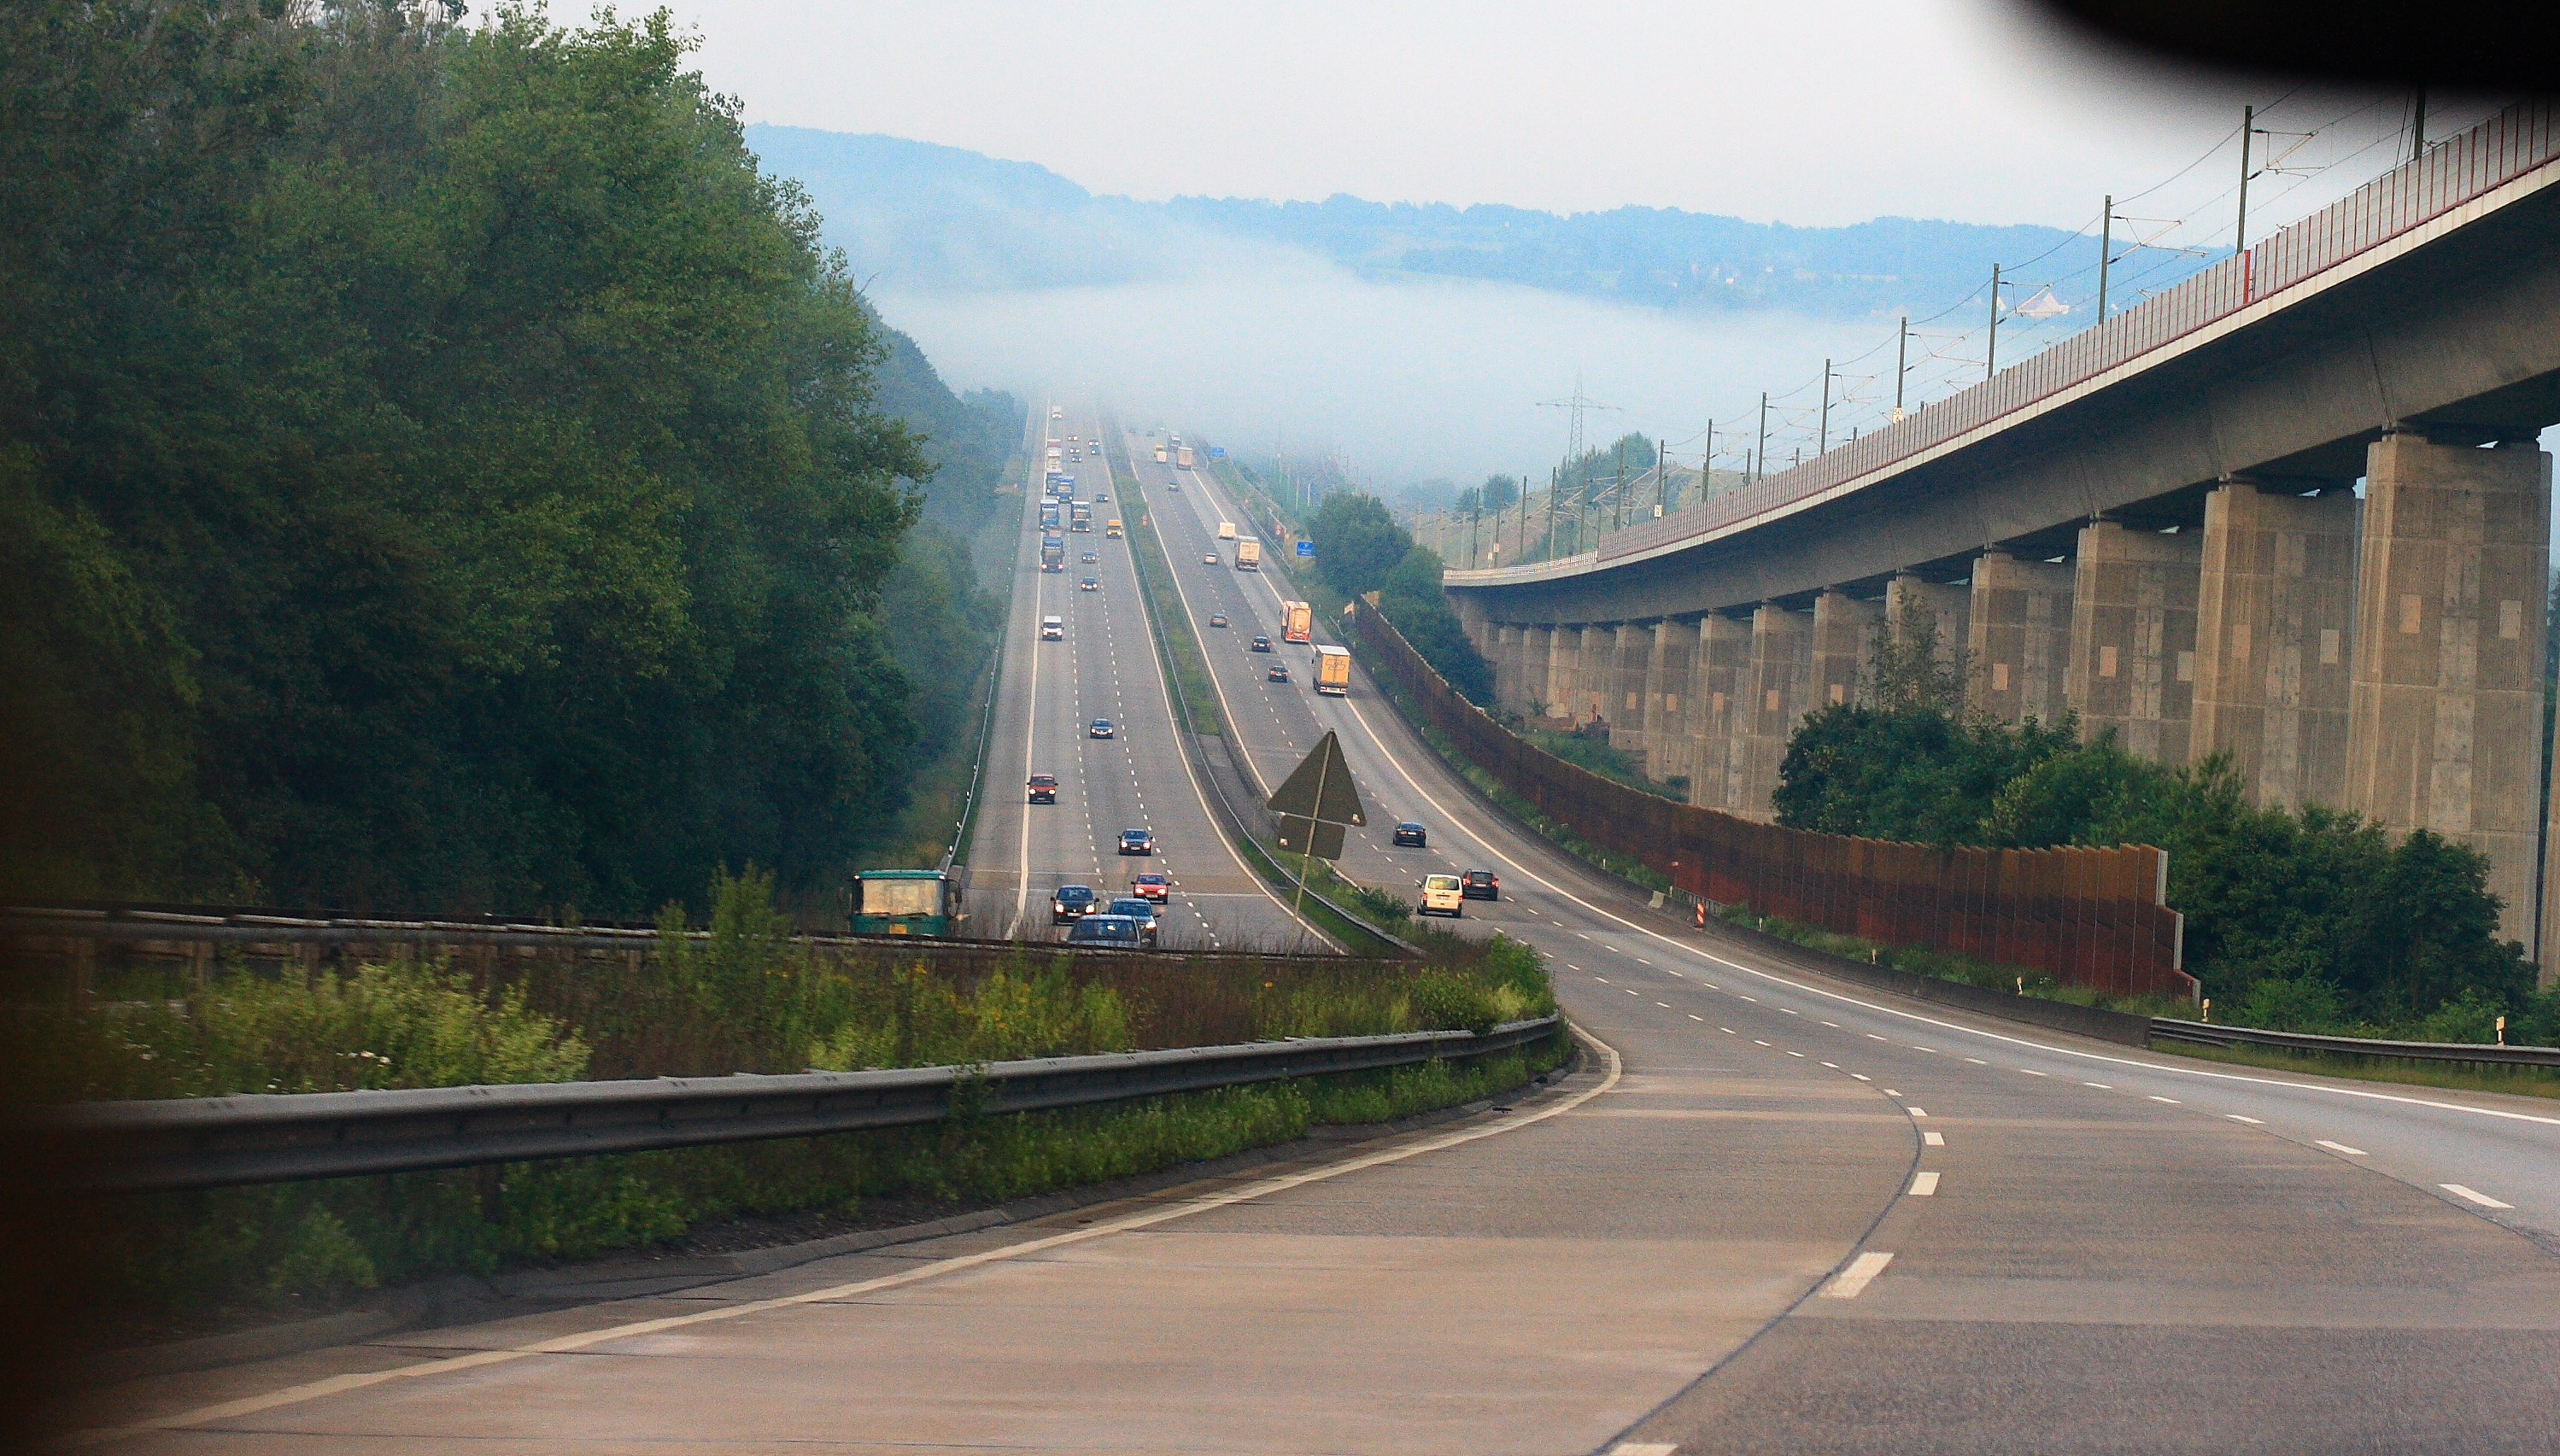 Who Will Build the Roads? – Plans for Autobahn Privatization in Germany